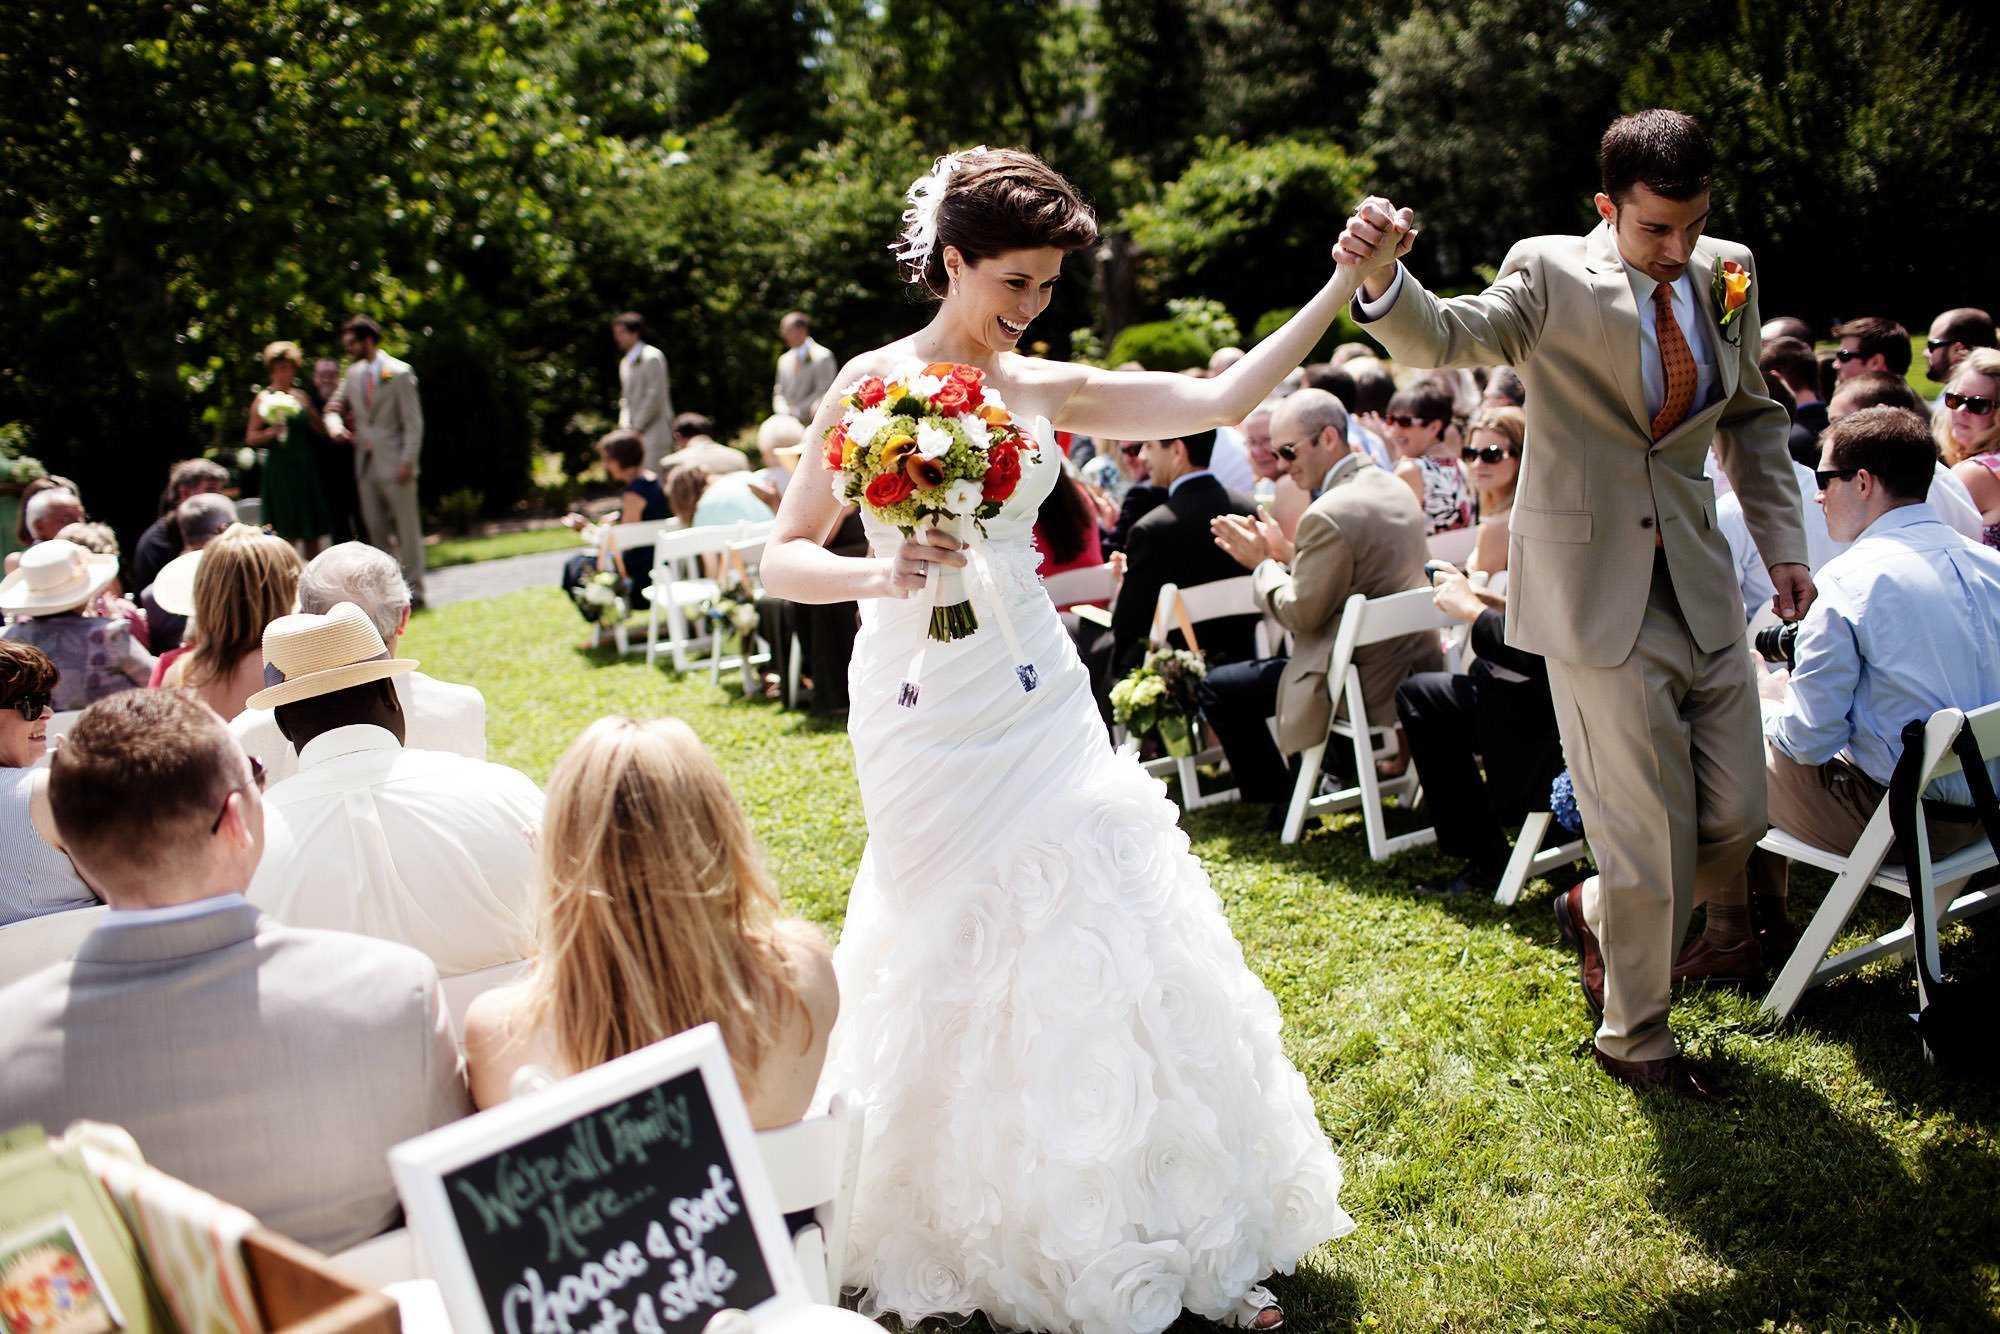 The bride and groom walk down the aisle after their River Farm Alexandria Wedding ceremony.